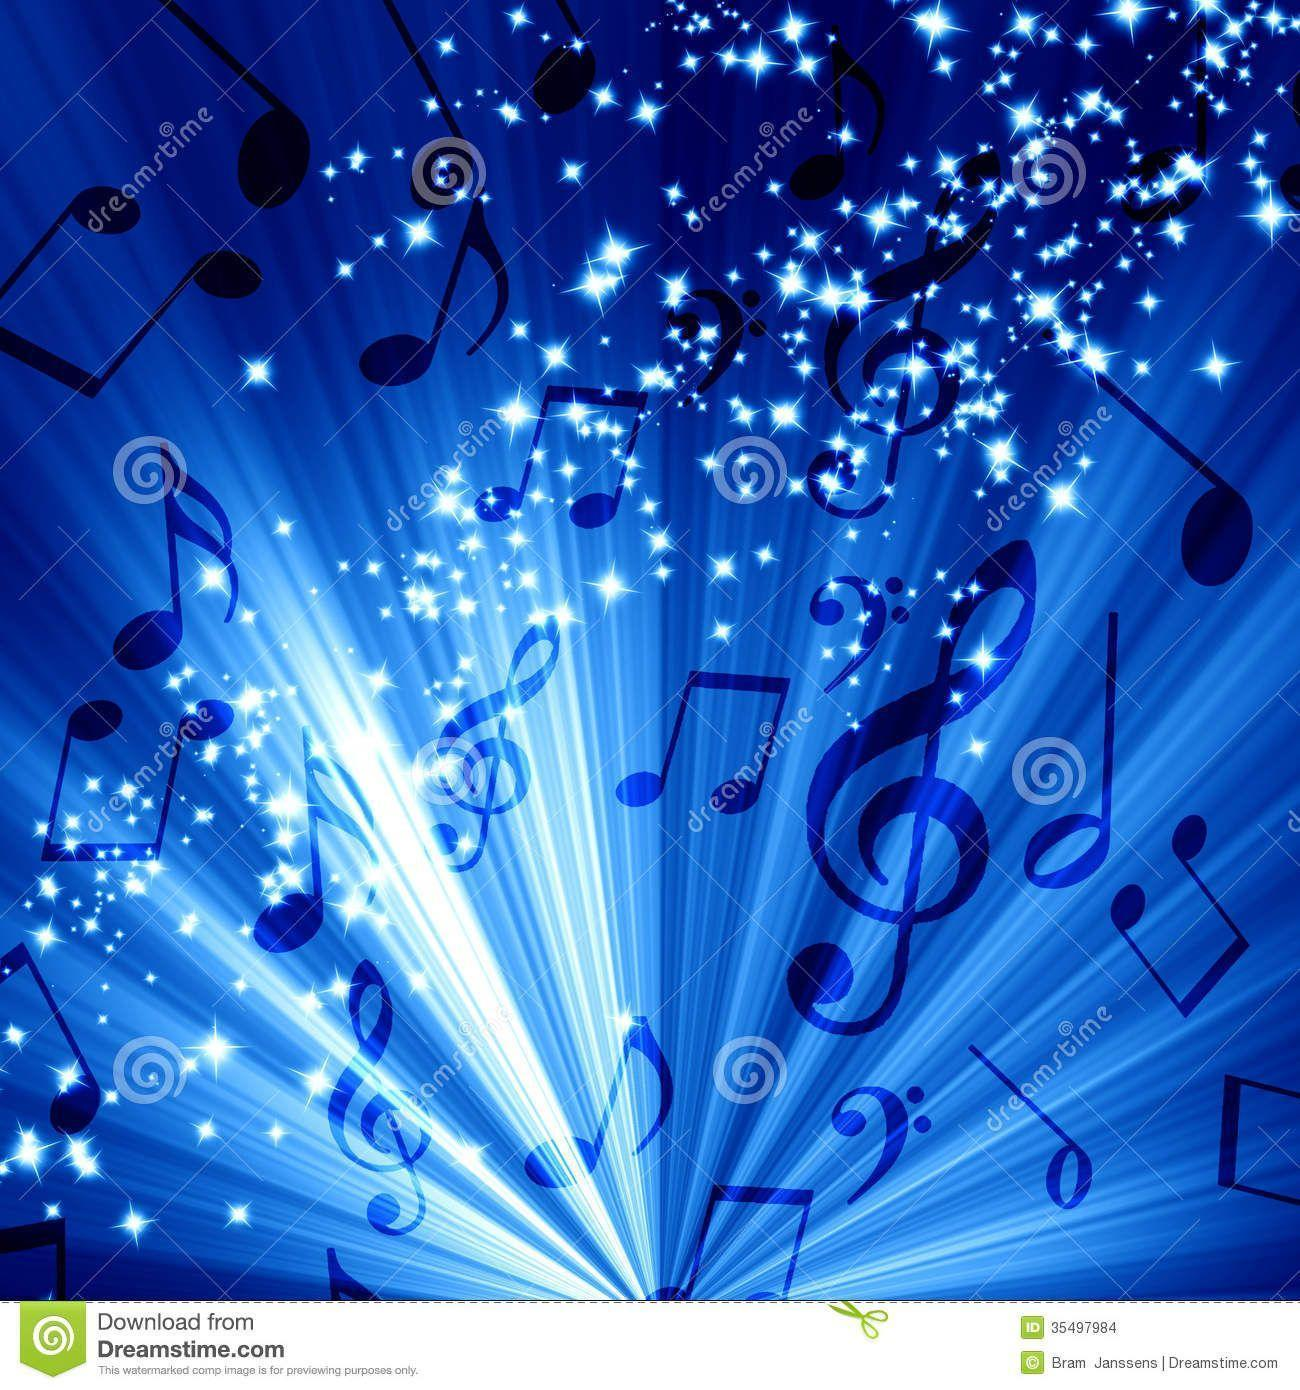 Music Note Backgrounds Blue Hd Pictures 4 HD Wallpapers